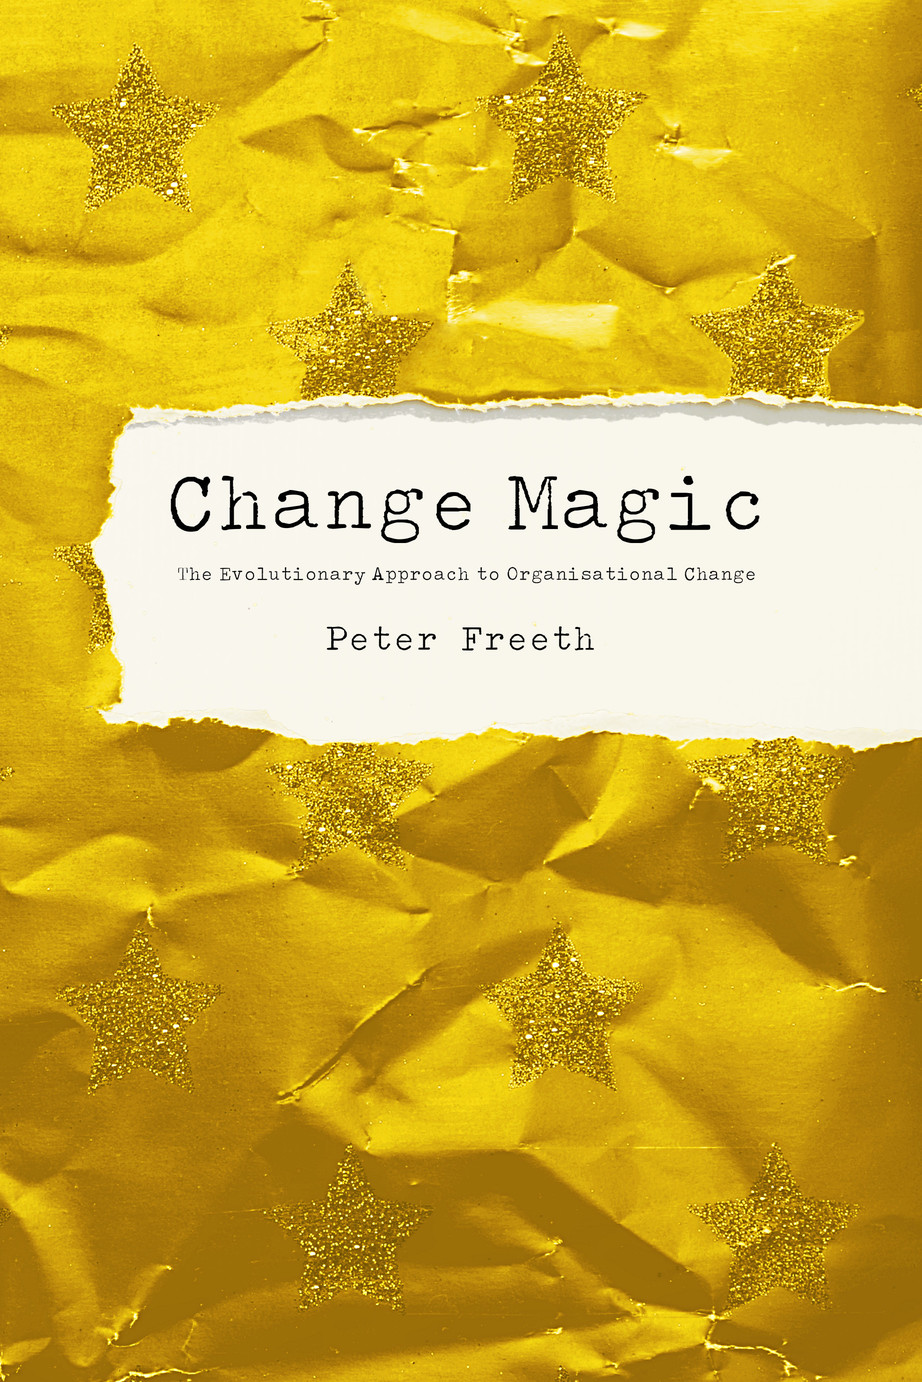 Change Magic by Peter Freeth. The Evolutionary Approach to Organisational Change. Corporate managers know that change is expensive, and traditional change programs are largely ineffective. Culture change doesnt change the culture, because culture isn't the cause of the problem, and it's not even something that you can change anyway. And yet, you absolutely know when it is different.  This is the very essence of Change Magic, that you cannot improve anything. You cannot even change anything. What you can do is to take action, to do something today that you did not do yesterday. Change is not an action, it's a perception.